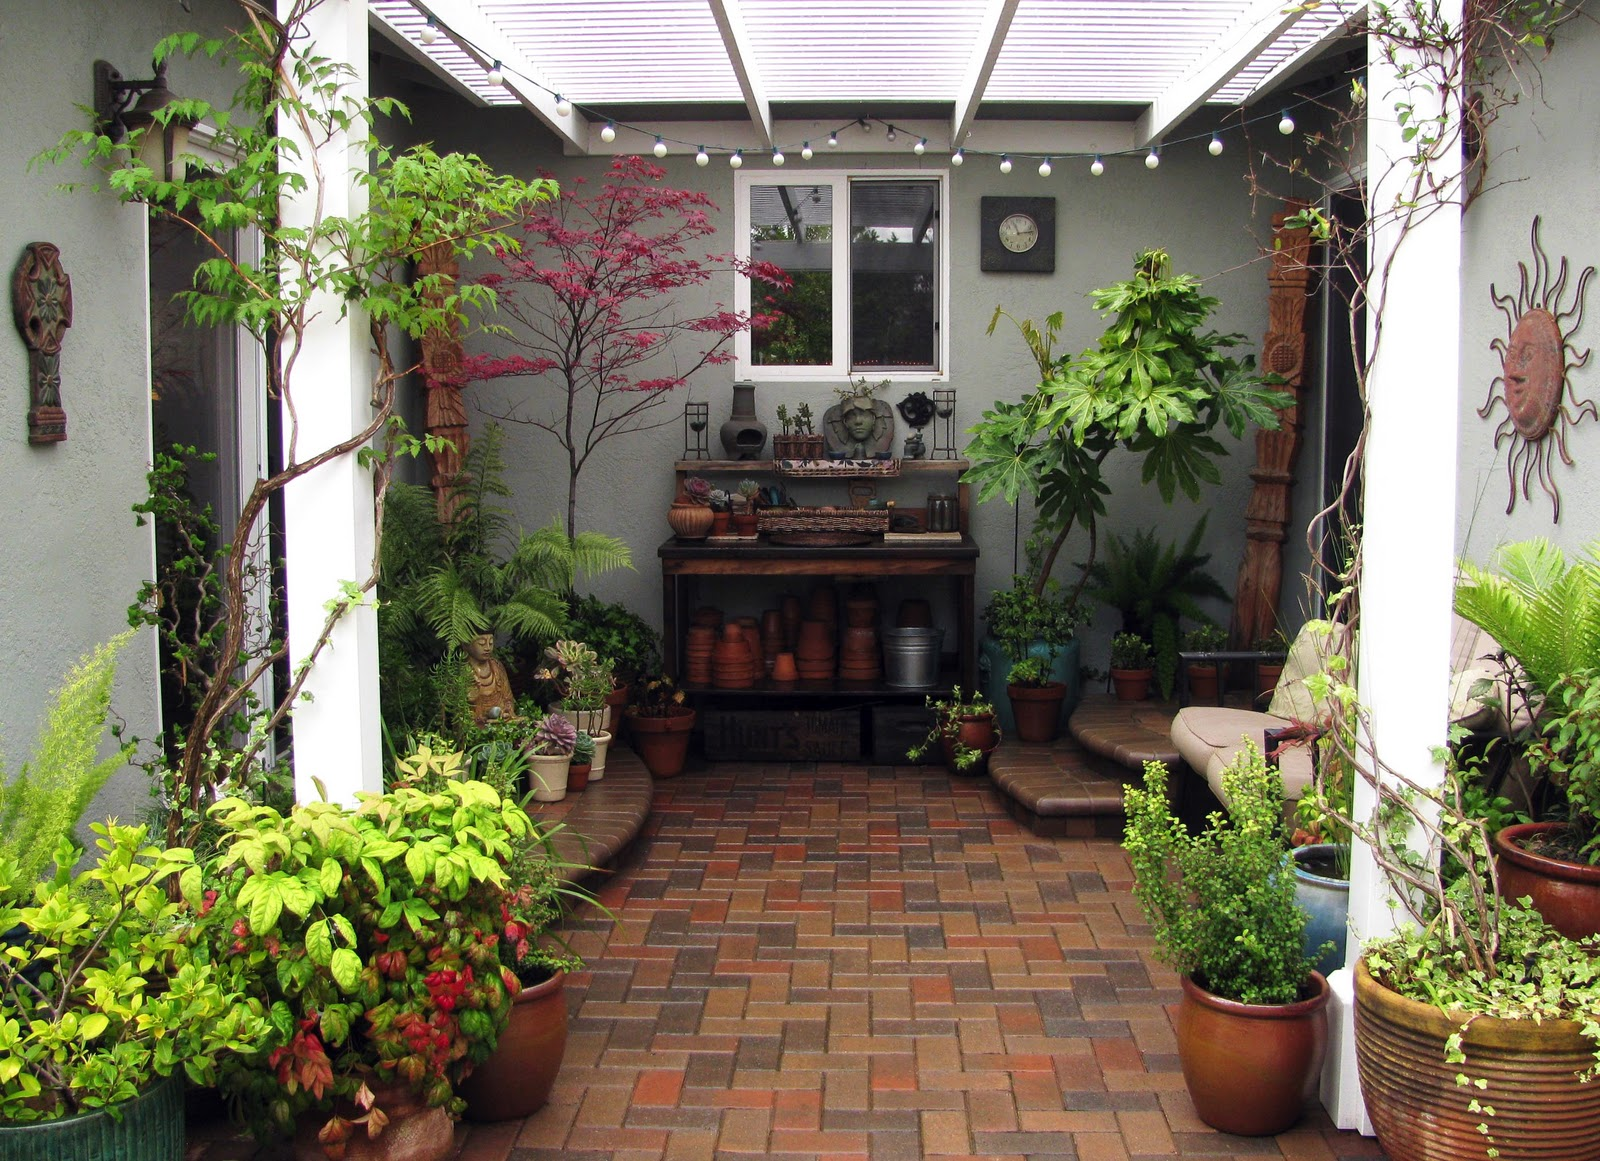 Interleafings garden designers roundtable expanding small spaces - Landscaping for small spaces gallery ...